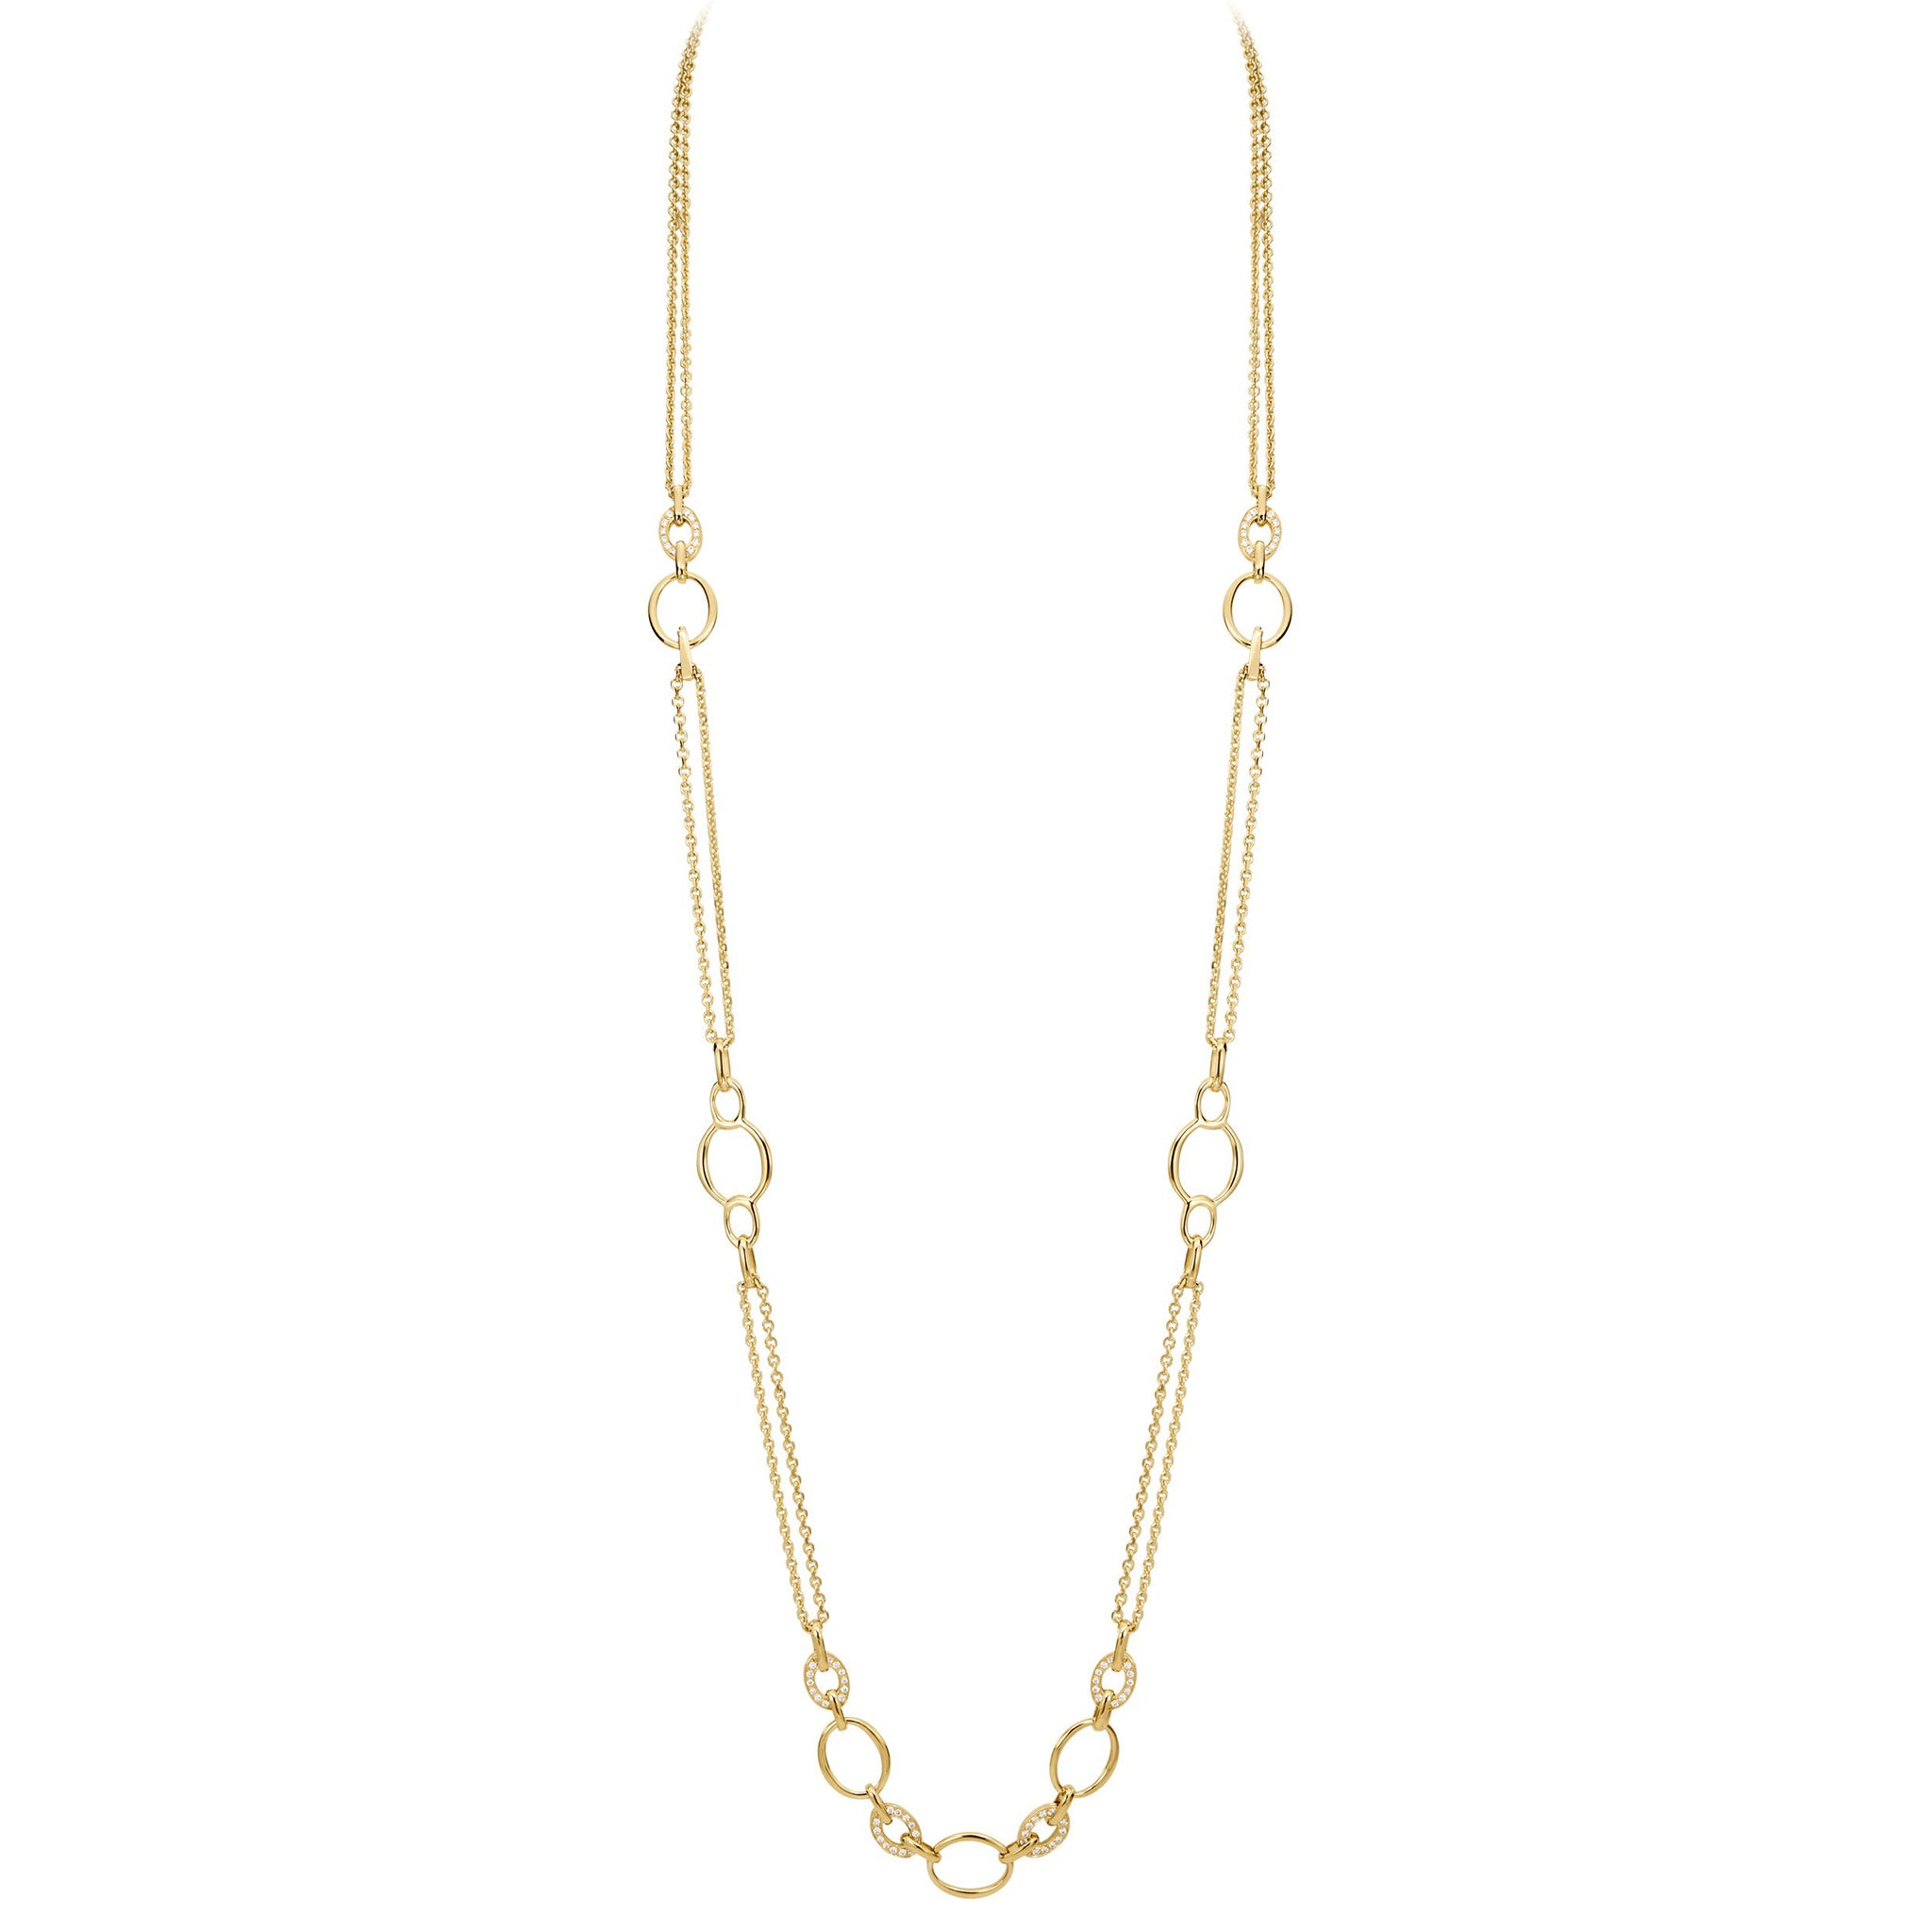 18K Yellow Gold Convertible Carousel Necklace